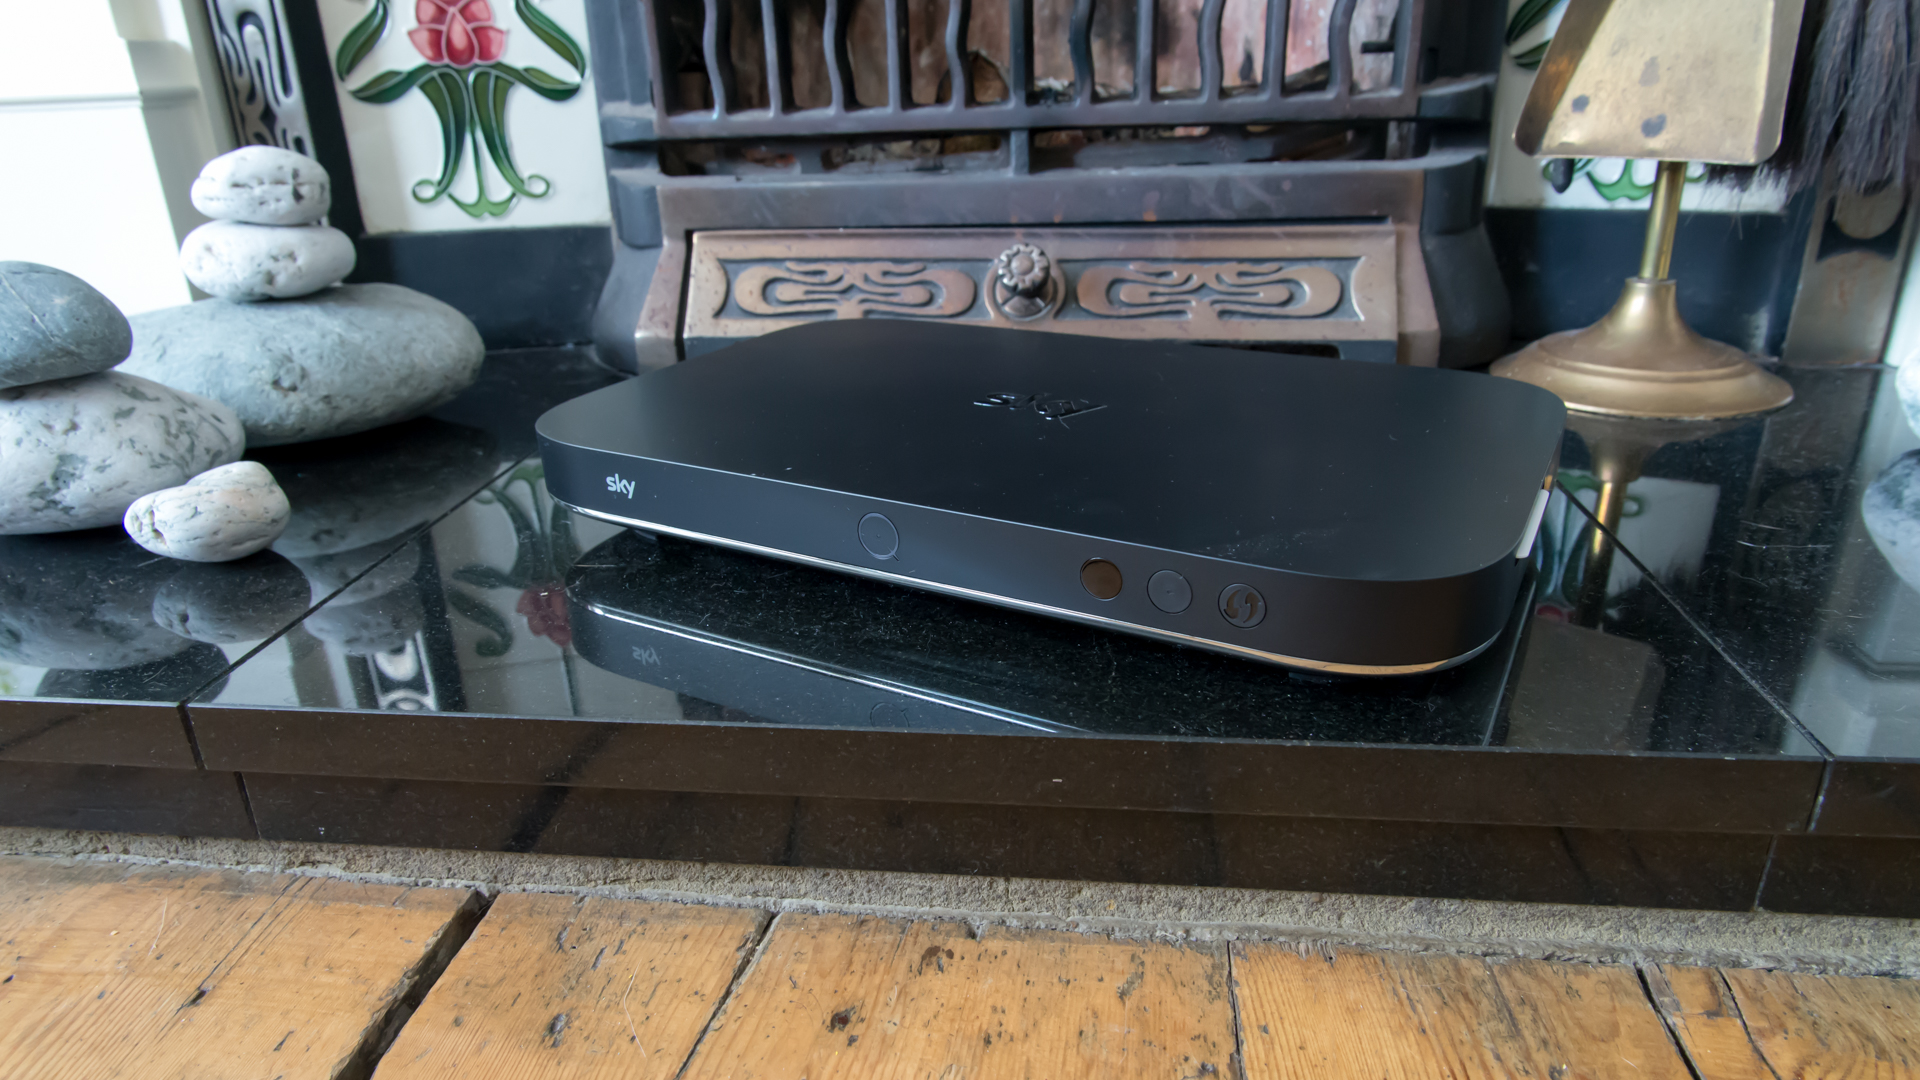 How To Use Ethernet With Sky Q Expert Reviews